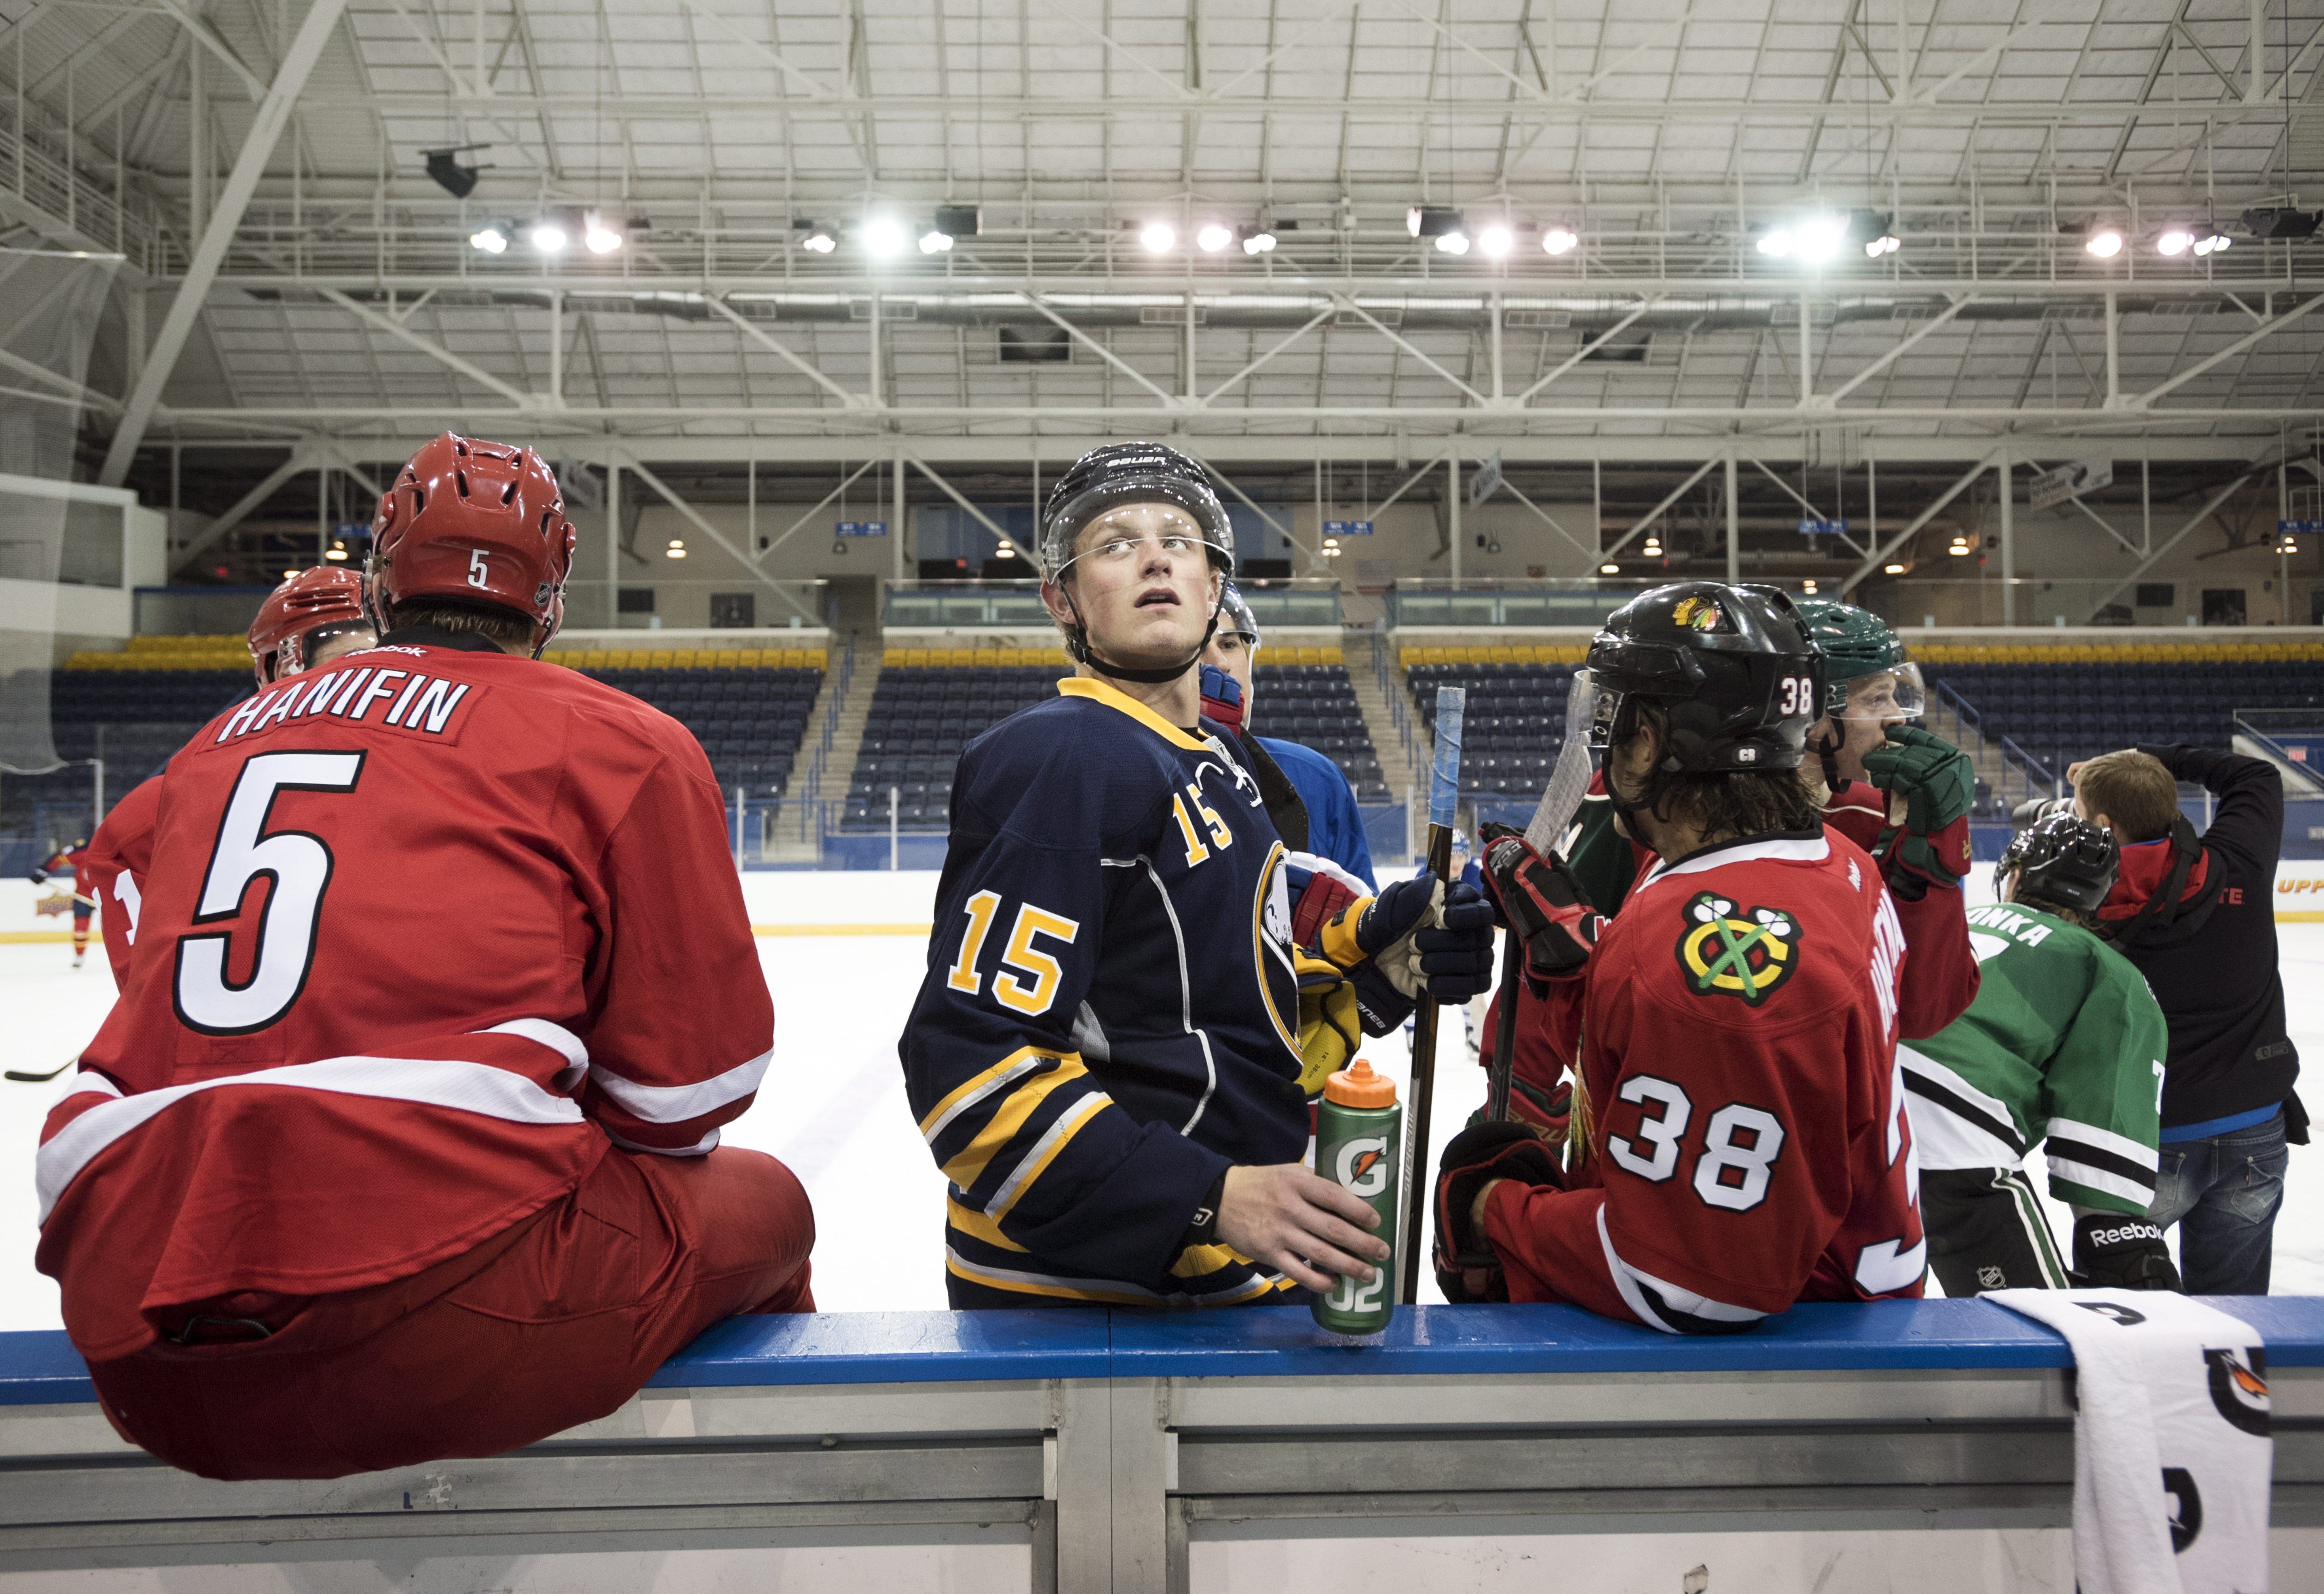 """FILE - In this Sept. 1, 2015, file photo, Buffalo Sabres' Jack Eichel, center, looks up during the National Hockey League Players Association (NHLPA) Rookie Showcase in Toronto. Sabres fans have taken a liking to """"Eich.""""  As consolations prizes go, the Sa"""